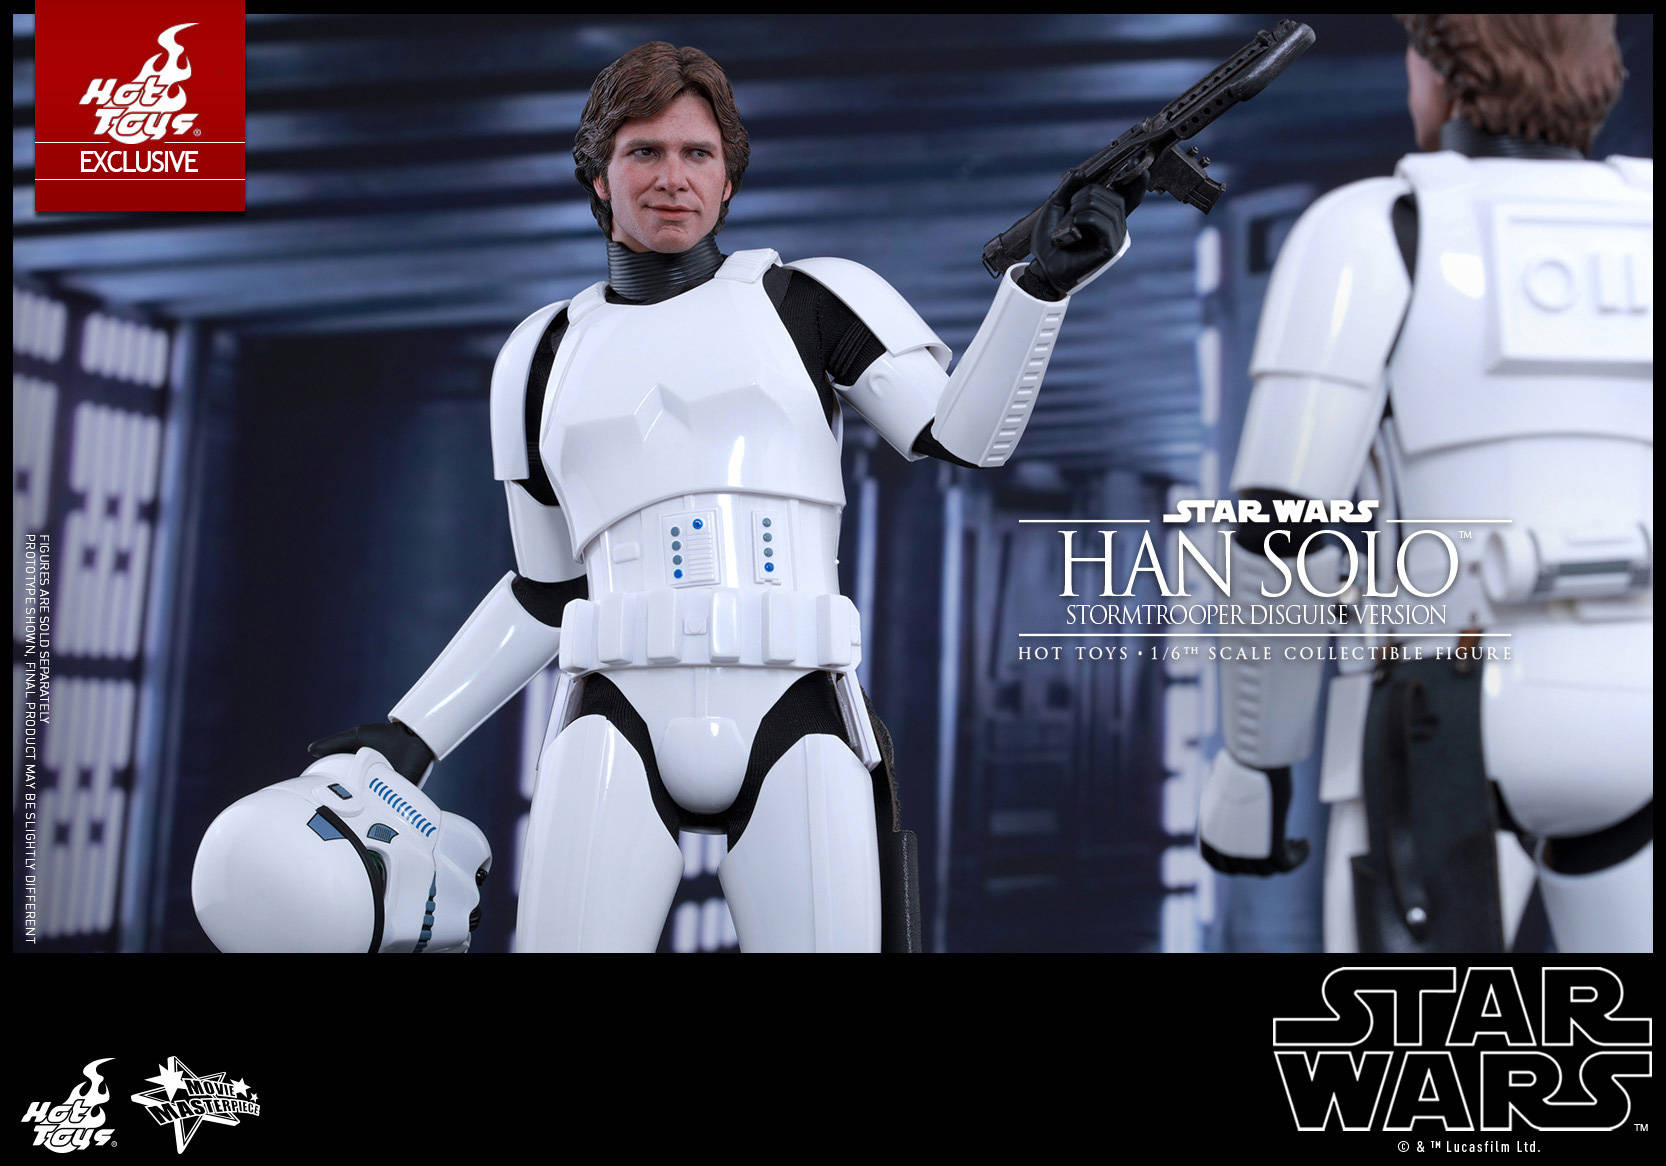 Hot-Toys---Star-Wars---Han-Solo-(Stormtrooper-Disguise-Version)-Collectible-Figure PR10